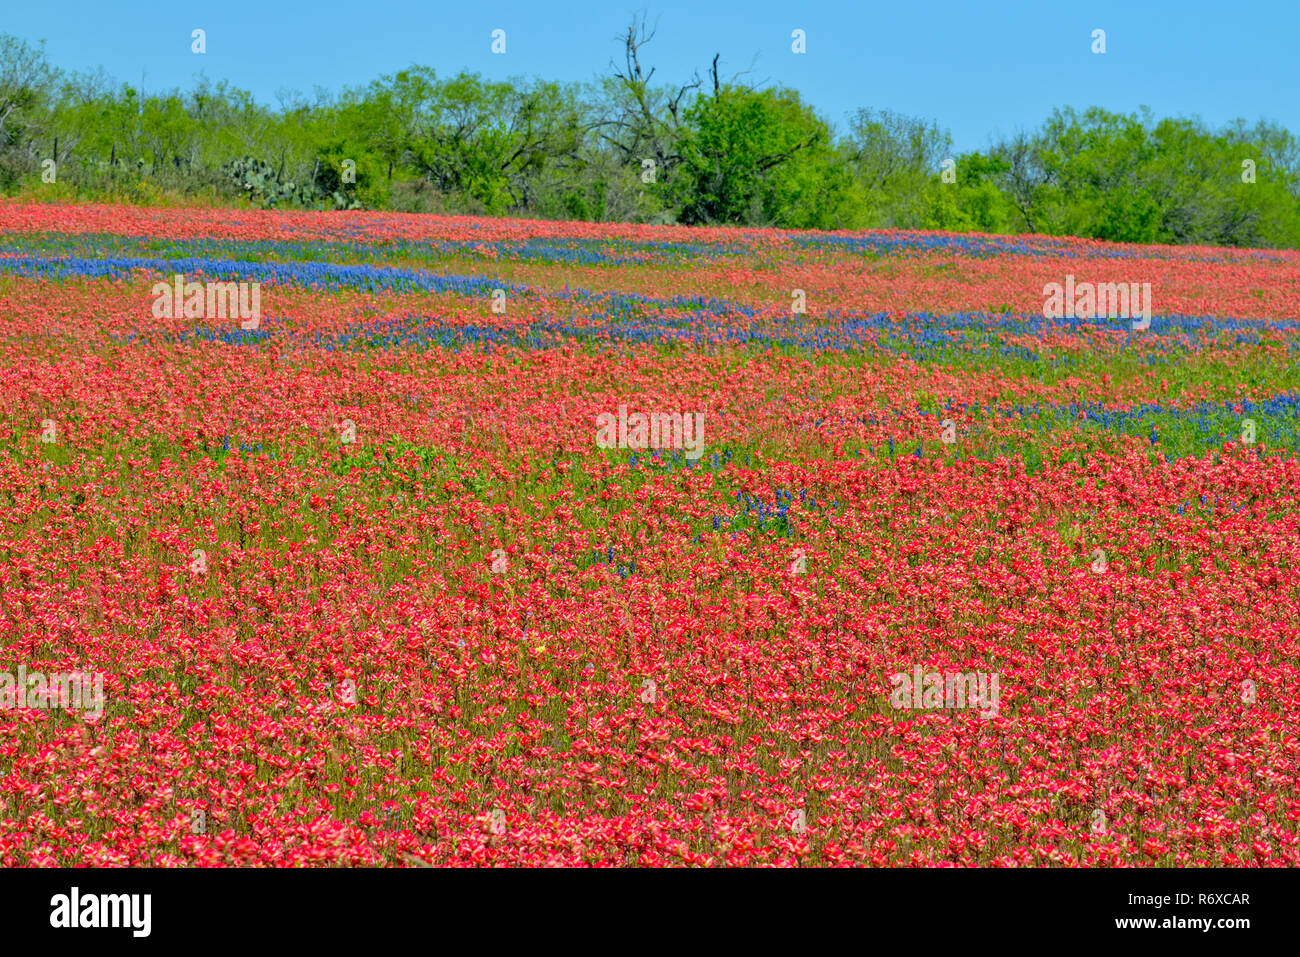 Page 2 476 High Resolution Stock Photography And Images Alamy